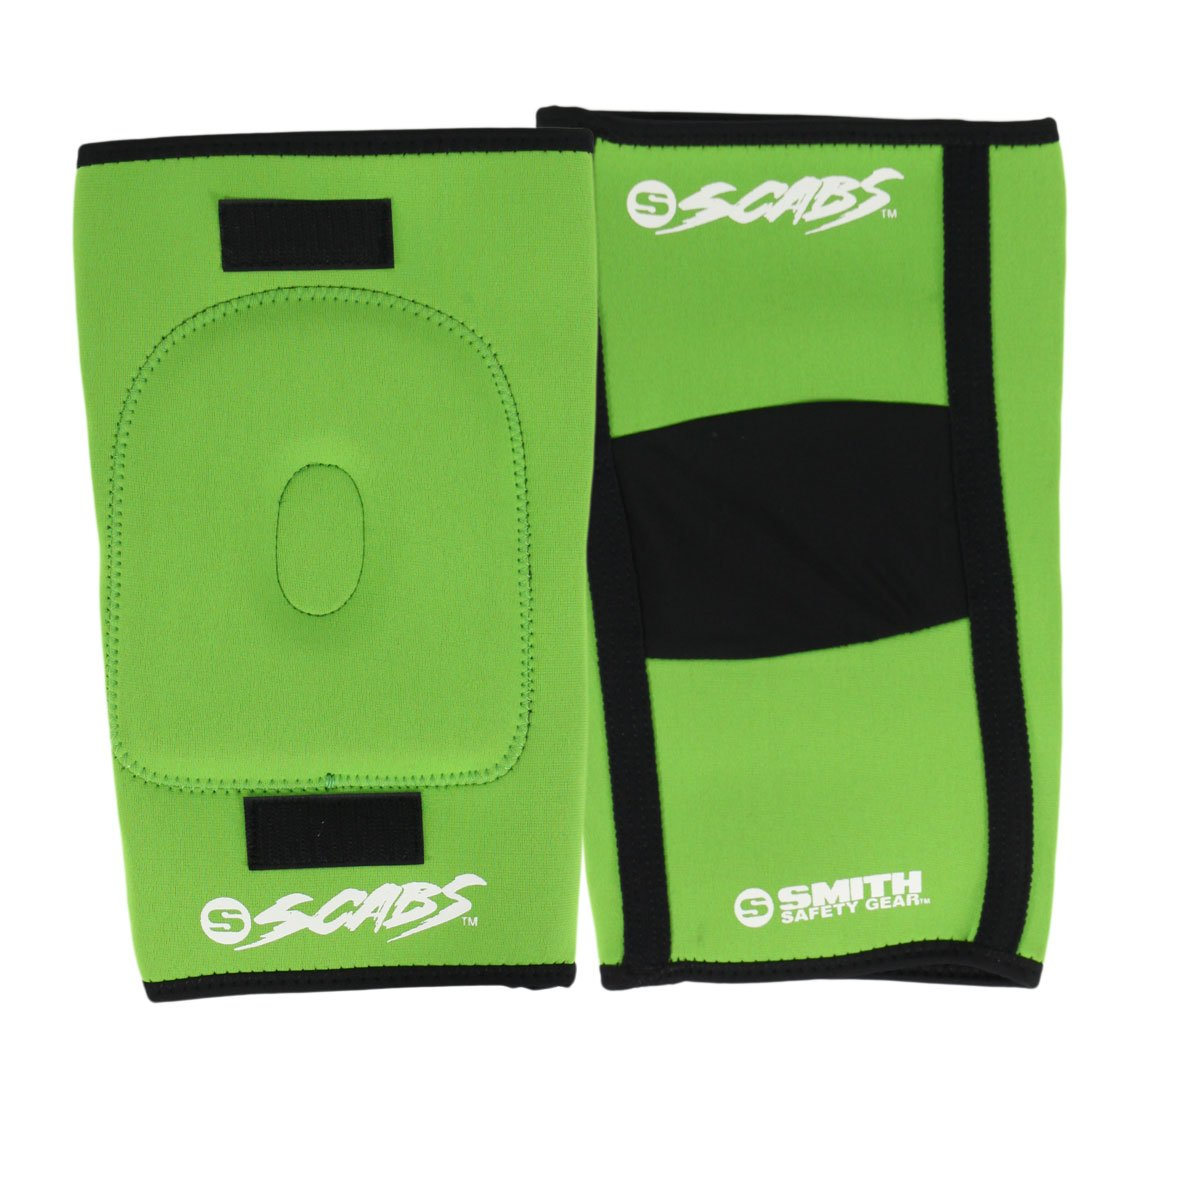 Smith Safety Gear Knee Gasket Set, Green, X-Large